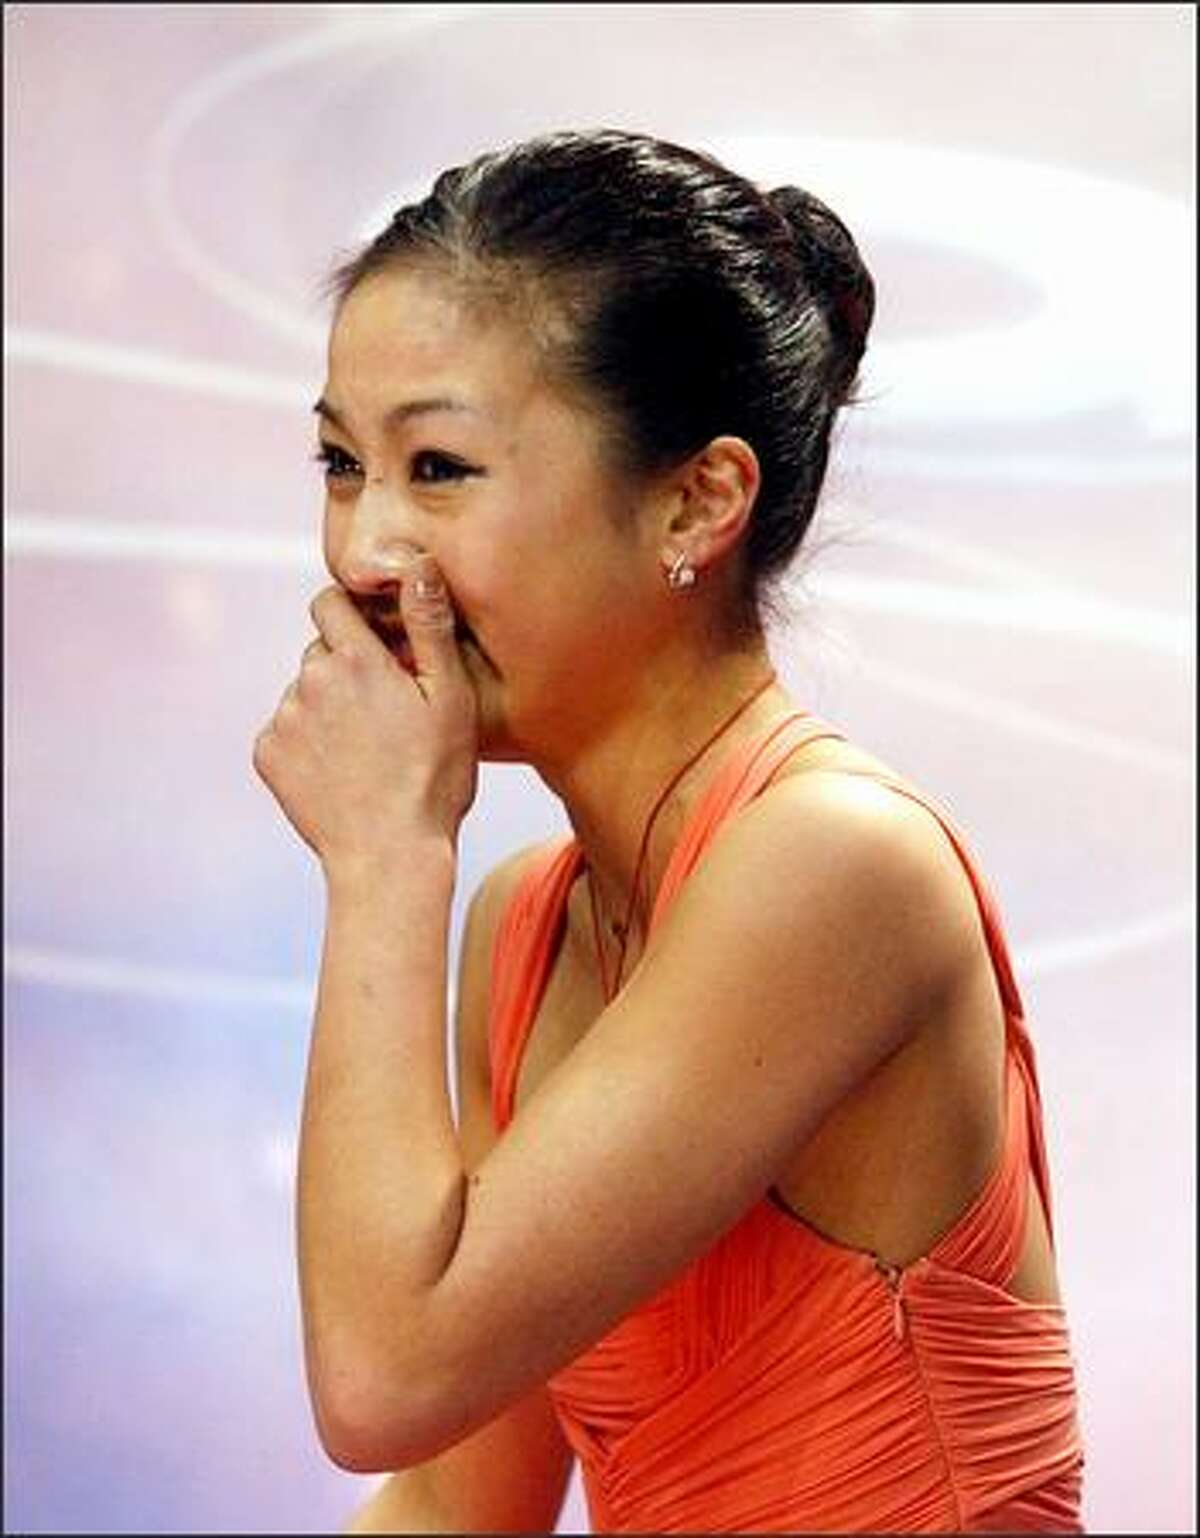 Michelle Kwan reacts as her scores are announced at the U.S. Figure Skating Championships in Atlanta. Kwan won the competition, her seventh straight and eighth overall. Only one of the sport's greats, Maribel Vinson, has more U.S. championships, with nine.